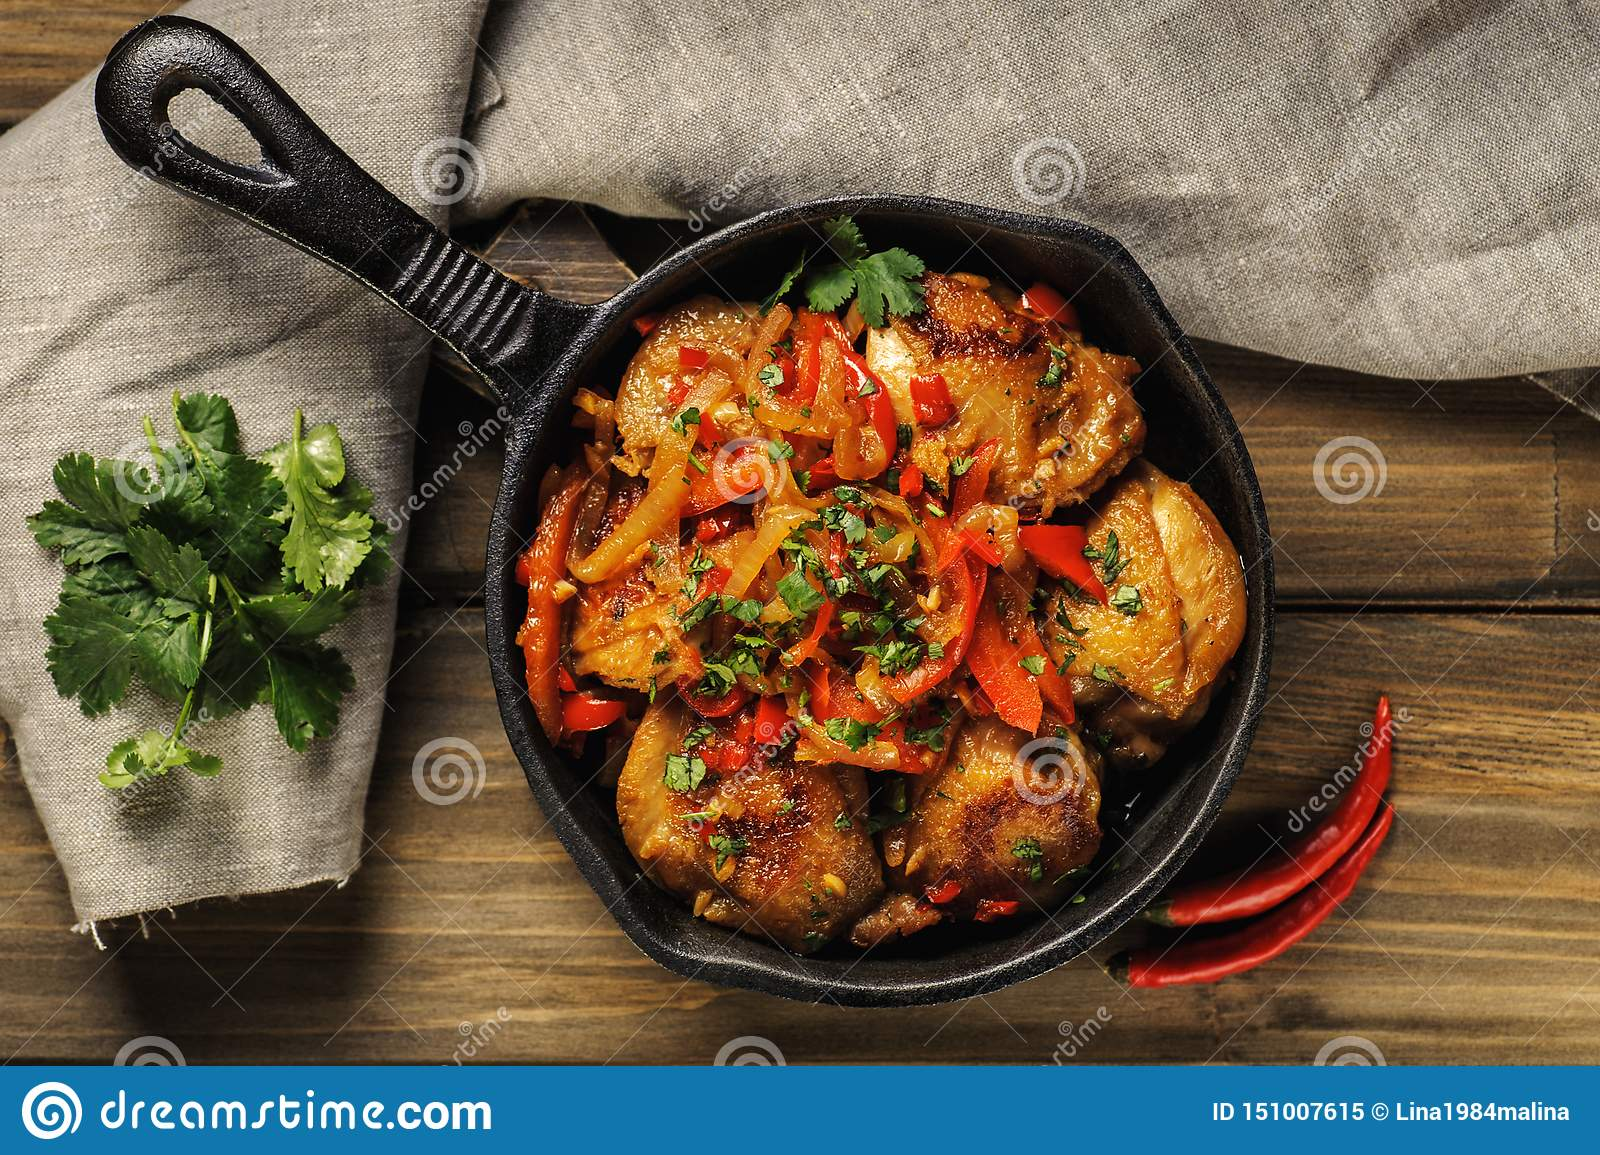 Fried chicken in spicy sauce with vegetables